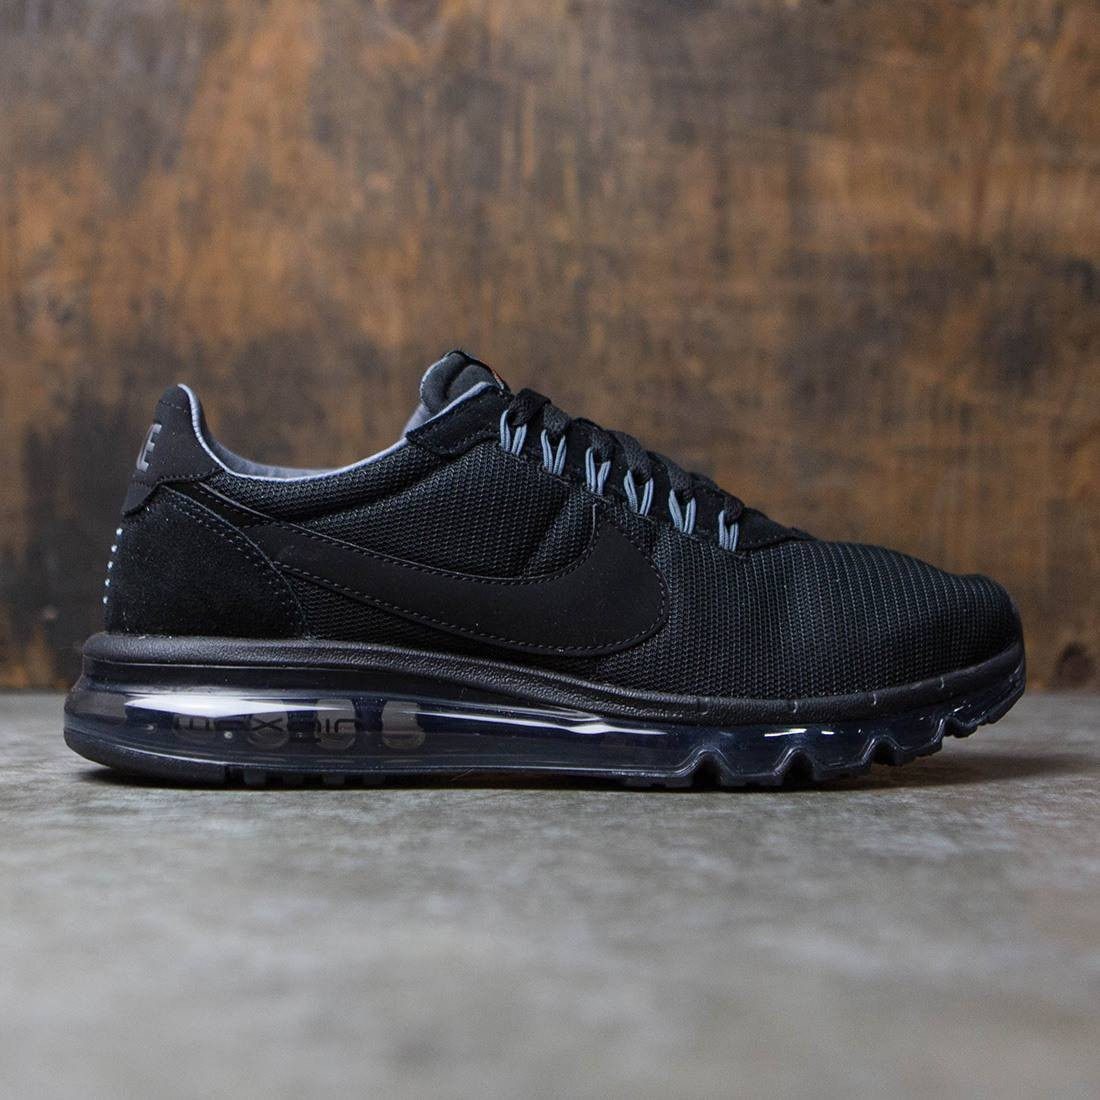 3f4a9f0b30 nike men air max ld zero black black dark grey